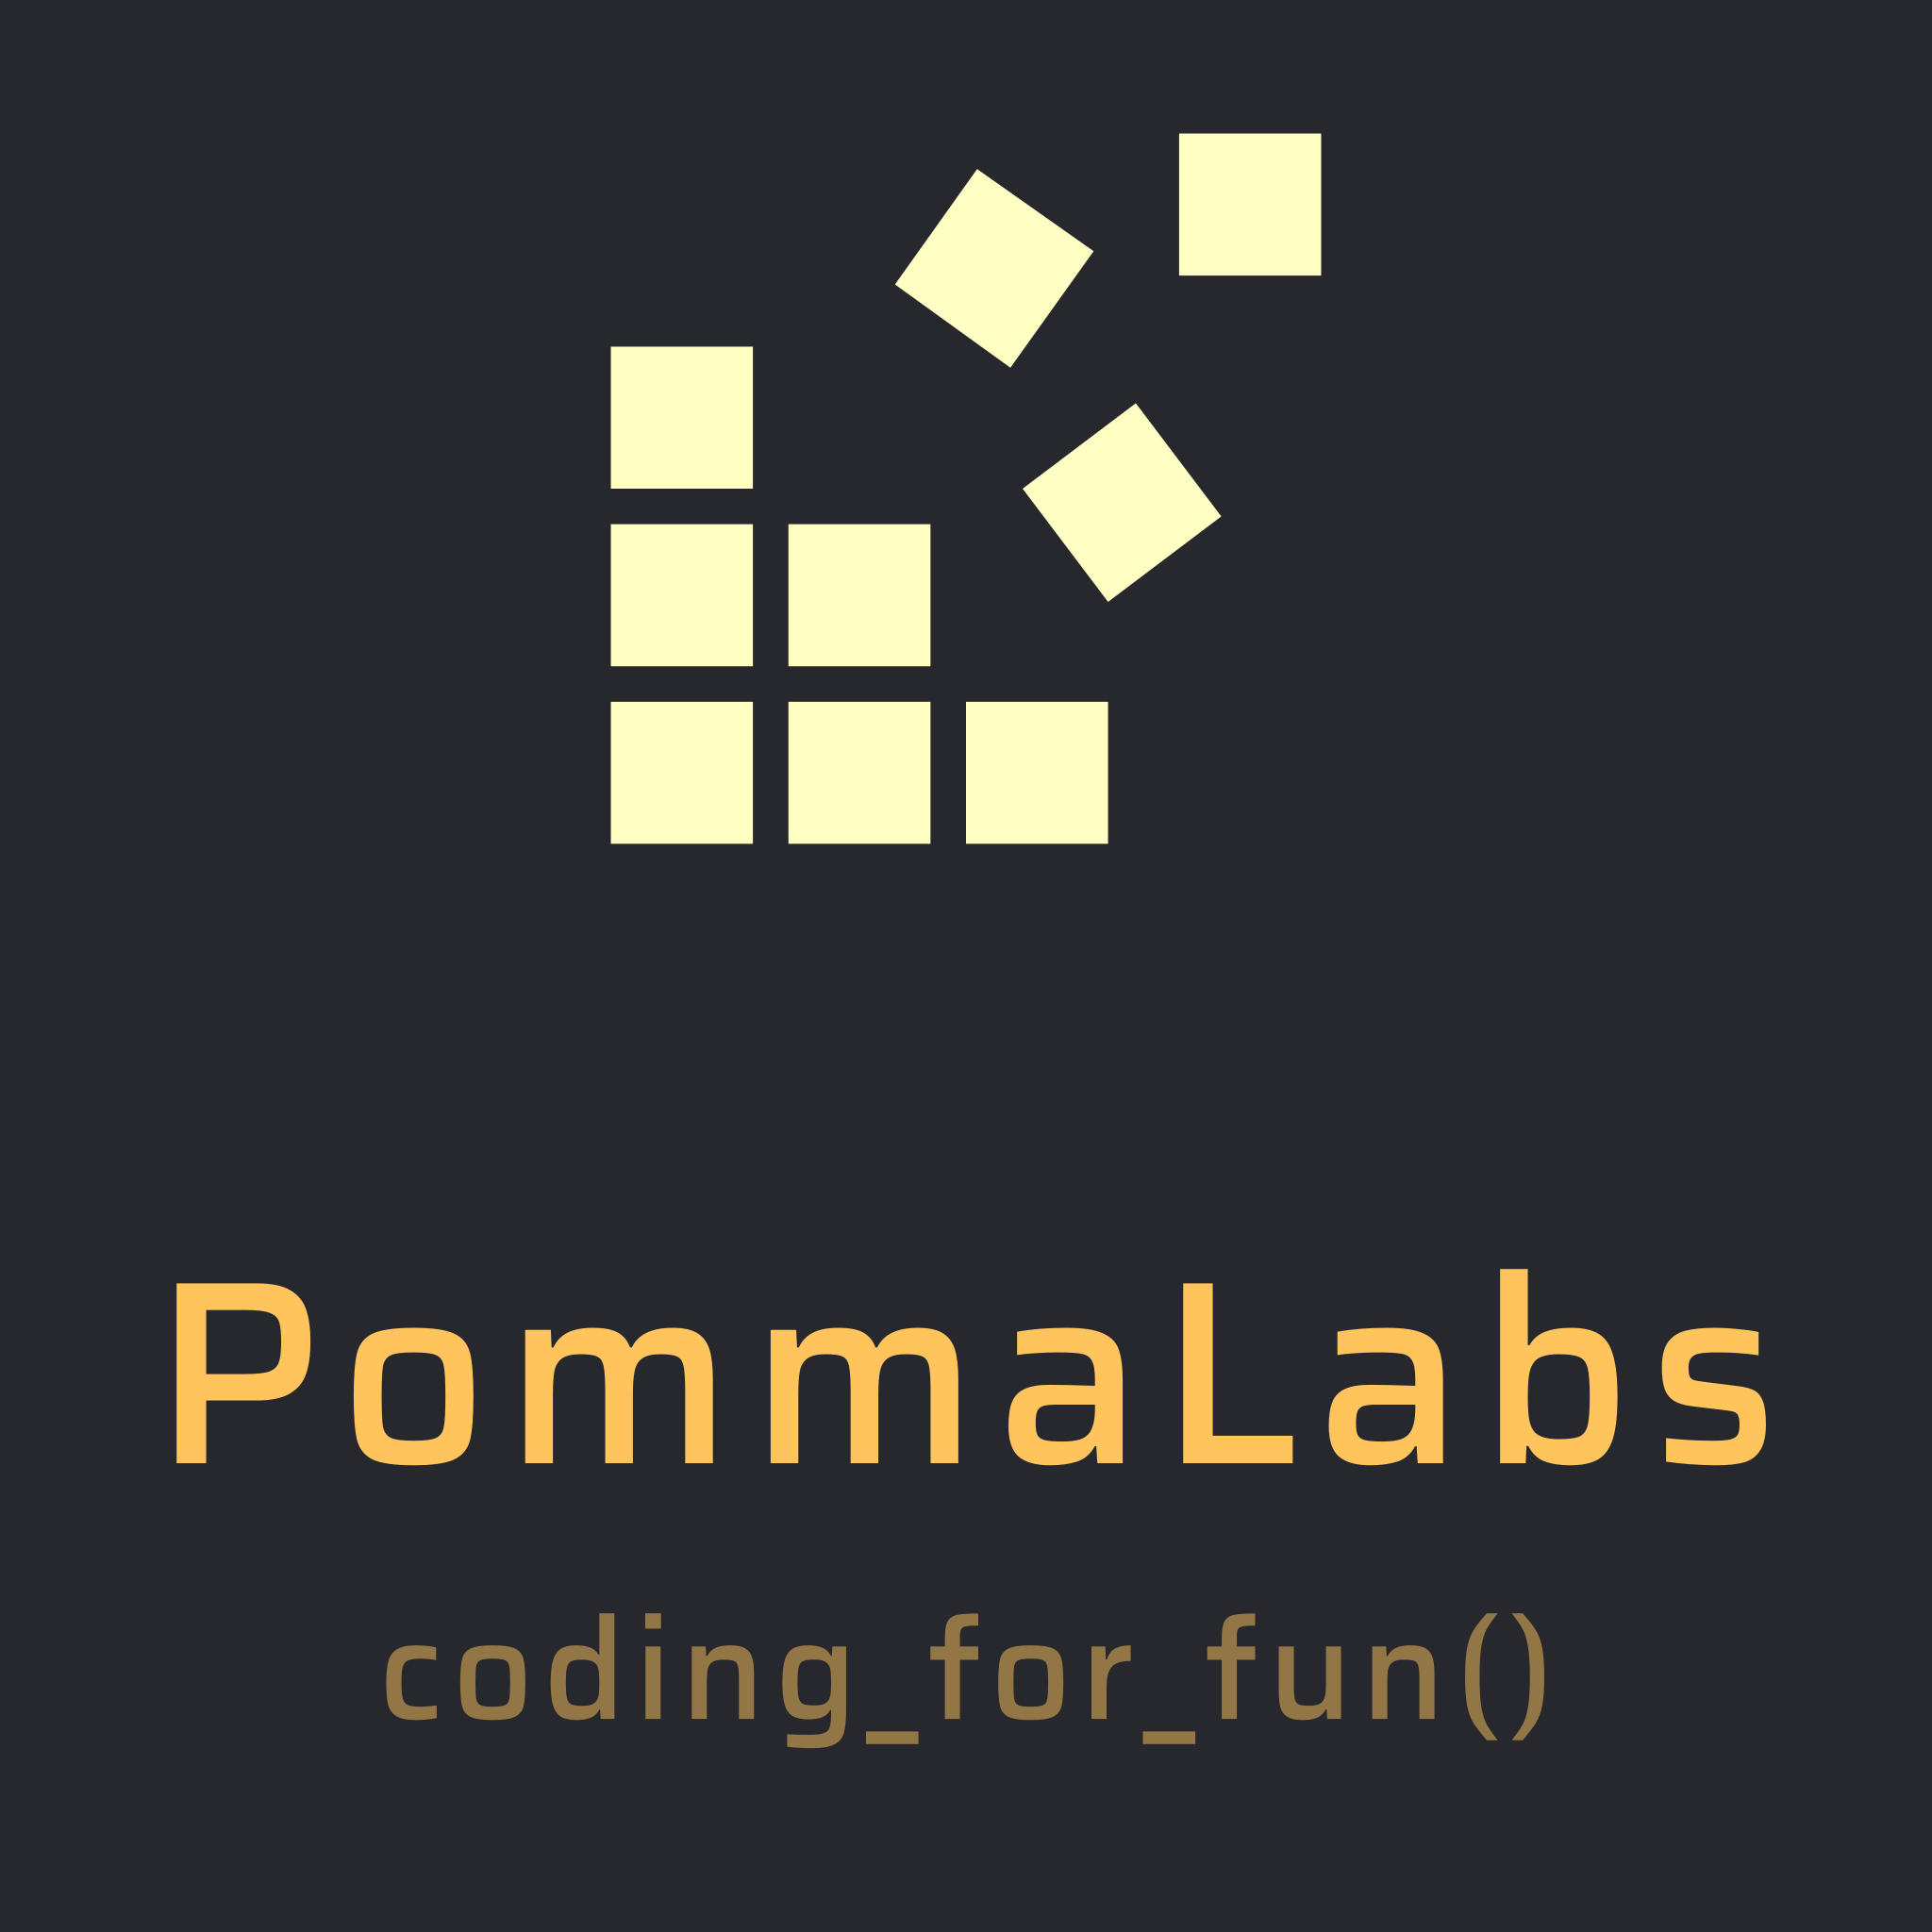 static/images/pommalabs-logo.g4b.png